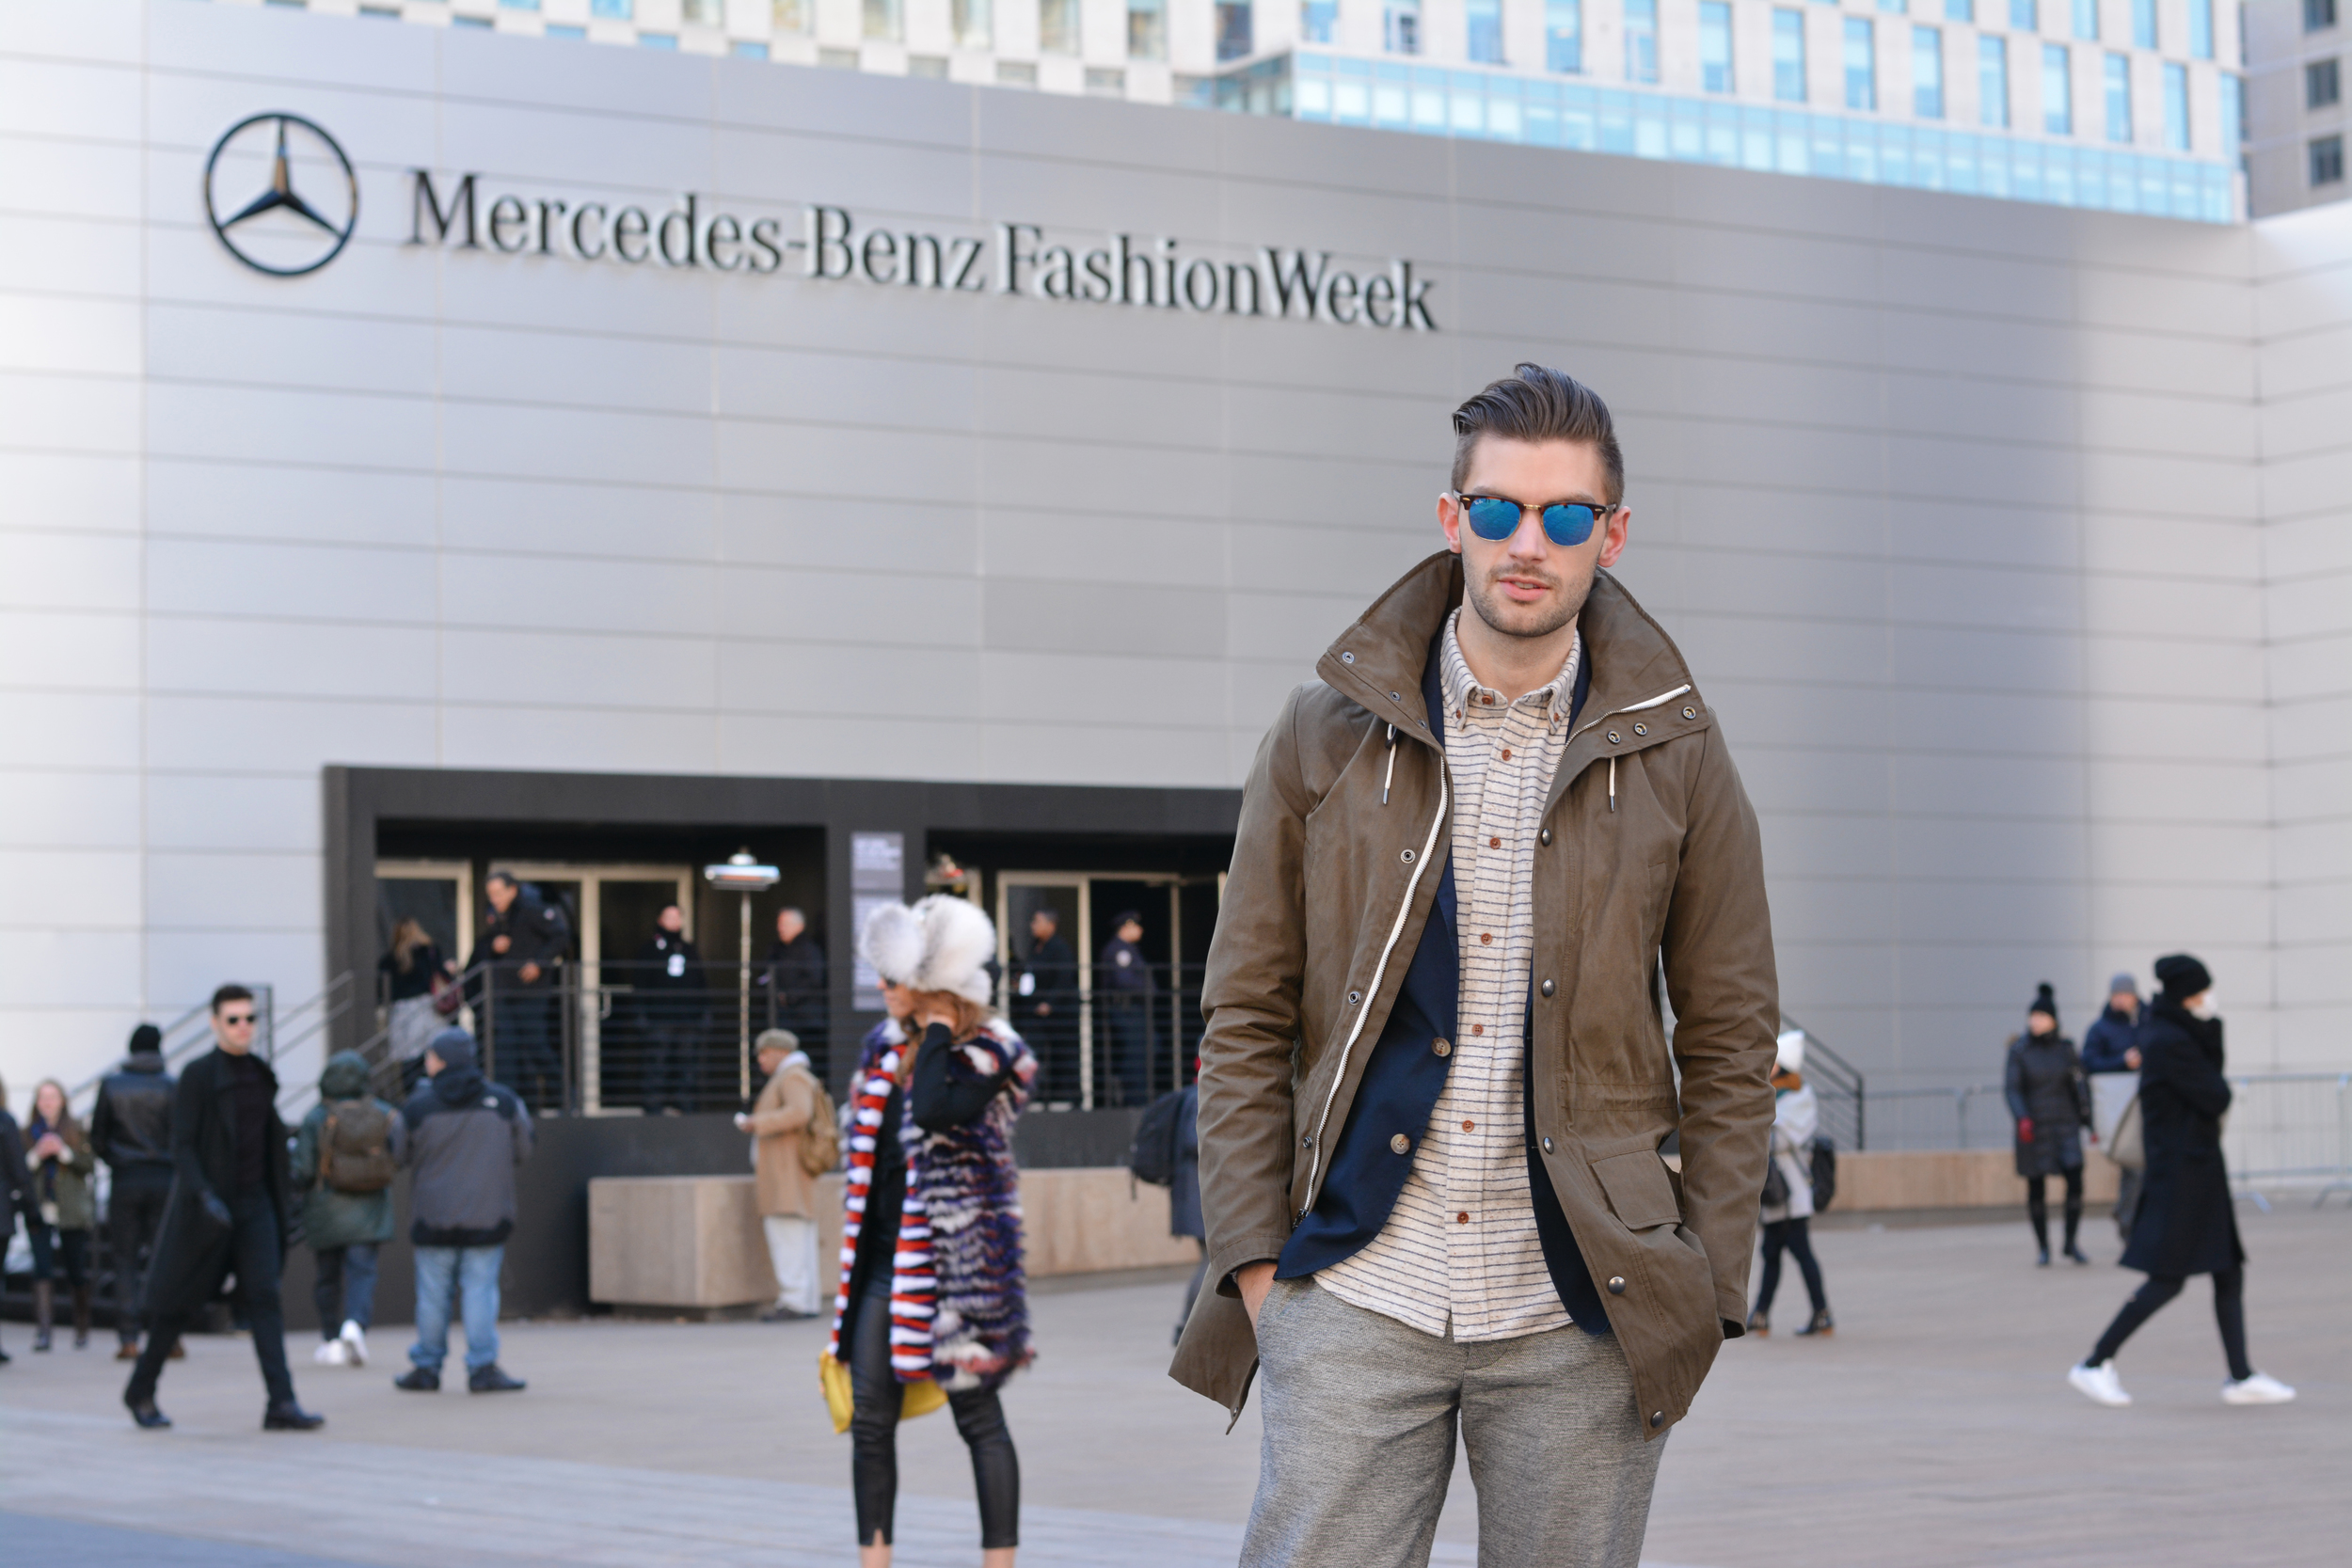 This season's biggest trend is  hypothermia .  Fashion influencers and bloggers alike are migrating to Lincoln Center to collectively pretend we are warm in 10 degree weather!The only relief is the runway!  Ikid. I kid.I'm sure that woman in the fur hat and striped jacket behind me is warm...  But really... Loving my new Club Monaco parka and super glad I had a thick shirt and blazer underneath. Feeling Spring 15' colors while livingAW15' weather.  Some of my favoritesfrom the runway so far?Todd Snyder's tailored wool trench coats, the patternedjackets from Concept Korea, and the neoprene bombers from Ricardo Seco. I'm all about that outerwear! Maybe that's just where my mind is at... Oh, and the varsity cargo joggers from Mark McNairy (who, p.s., previewed his collection like a film premiere. I watched Nick Wooster take'selfies' of Nick Wooster walking in arunway show on a movie screen. Very meta.)  More to come as the week unfolds. Temps set to drop to 0* on Monday so we may be previewing collections from our living rooms...  Club Monaco Parka,  blazer , shirt ( similar ) and  trousers  /  Stan Smith Adidas sneakers  /  Rayban sunglasses